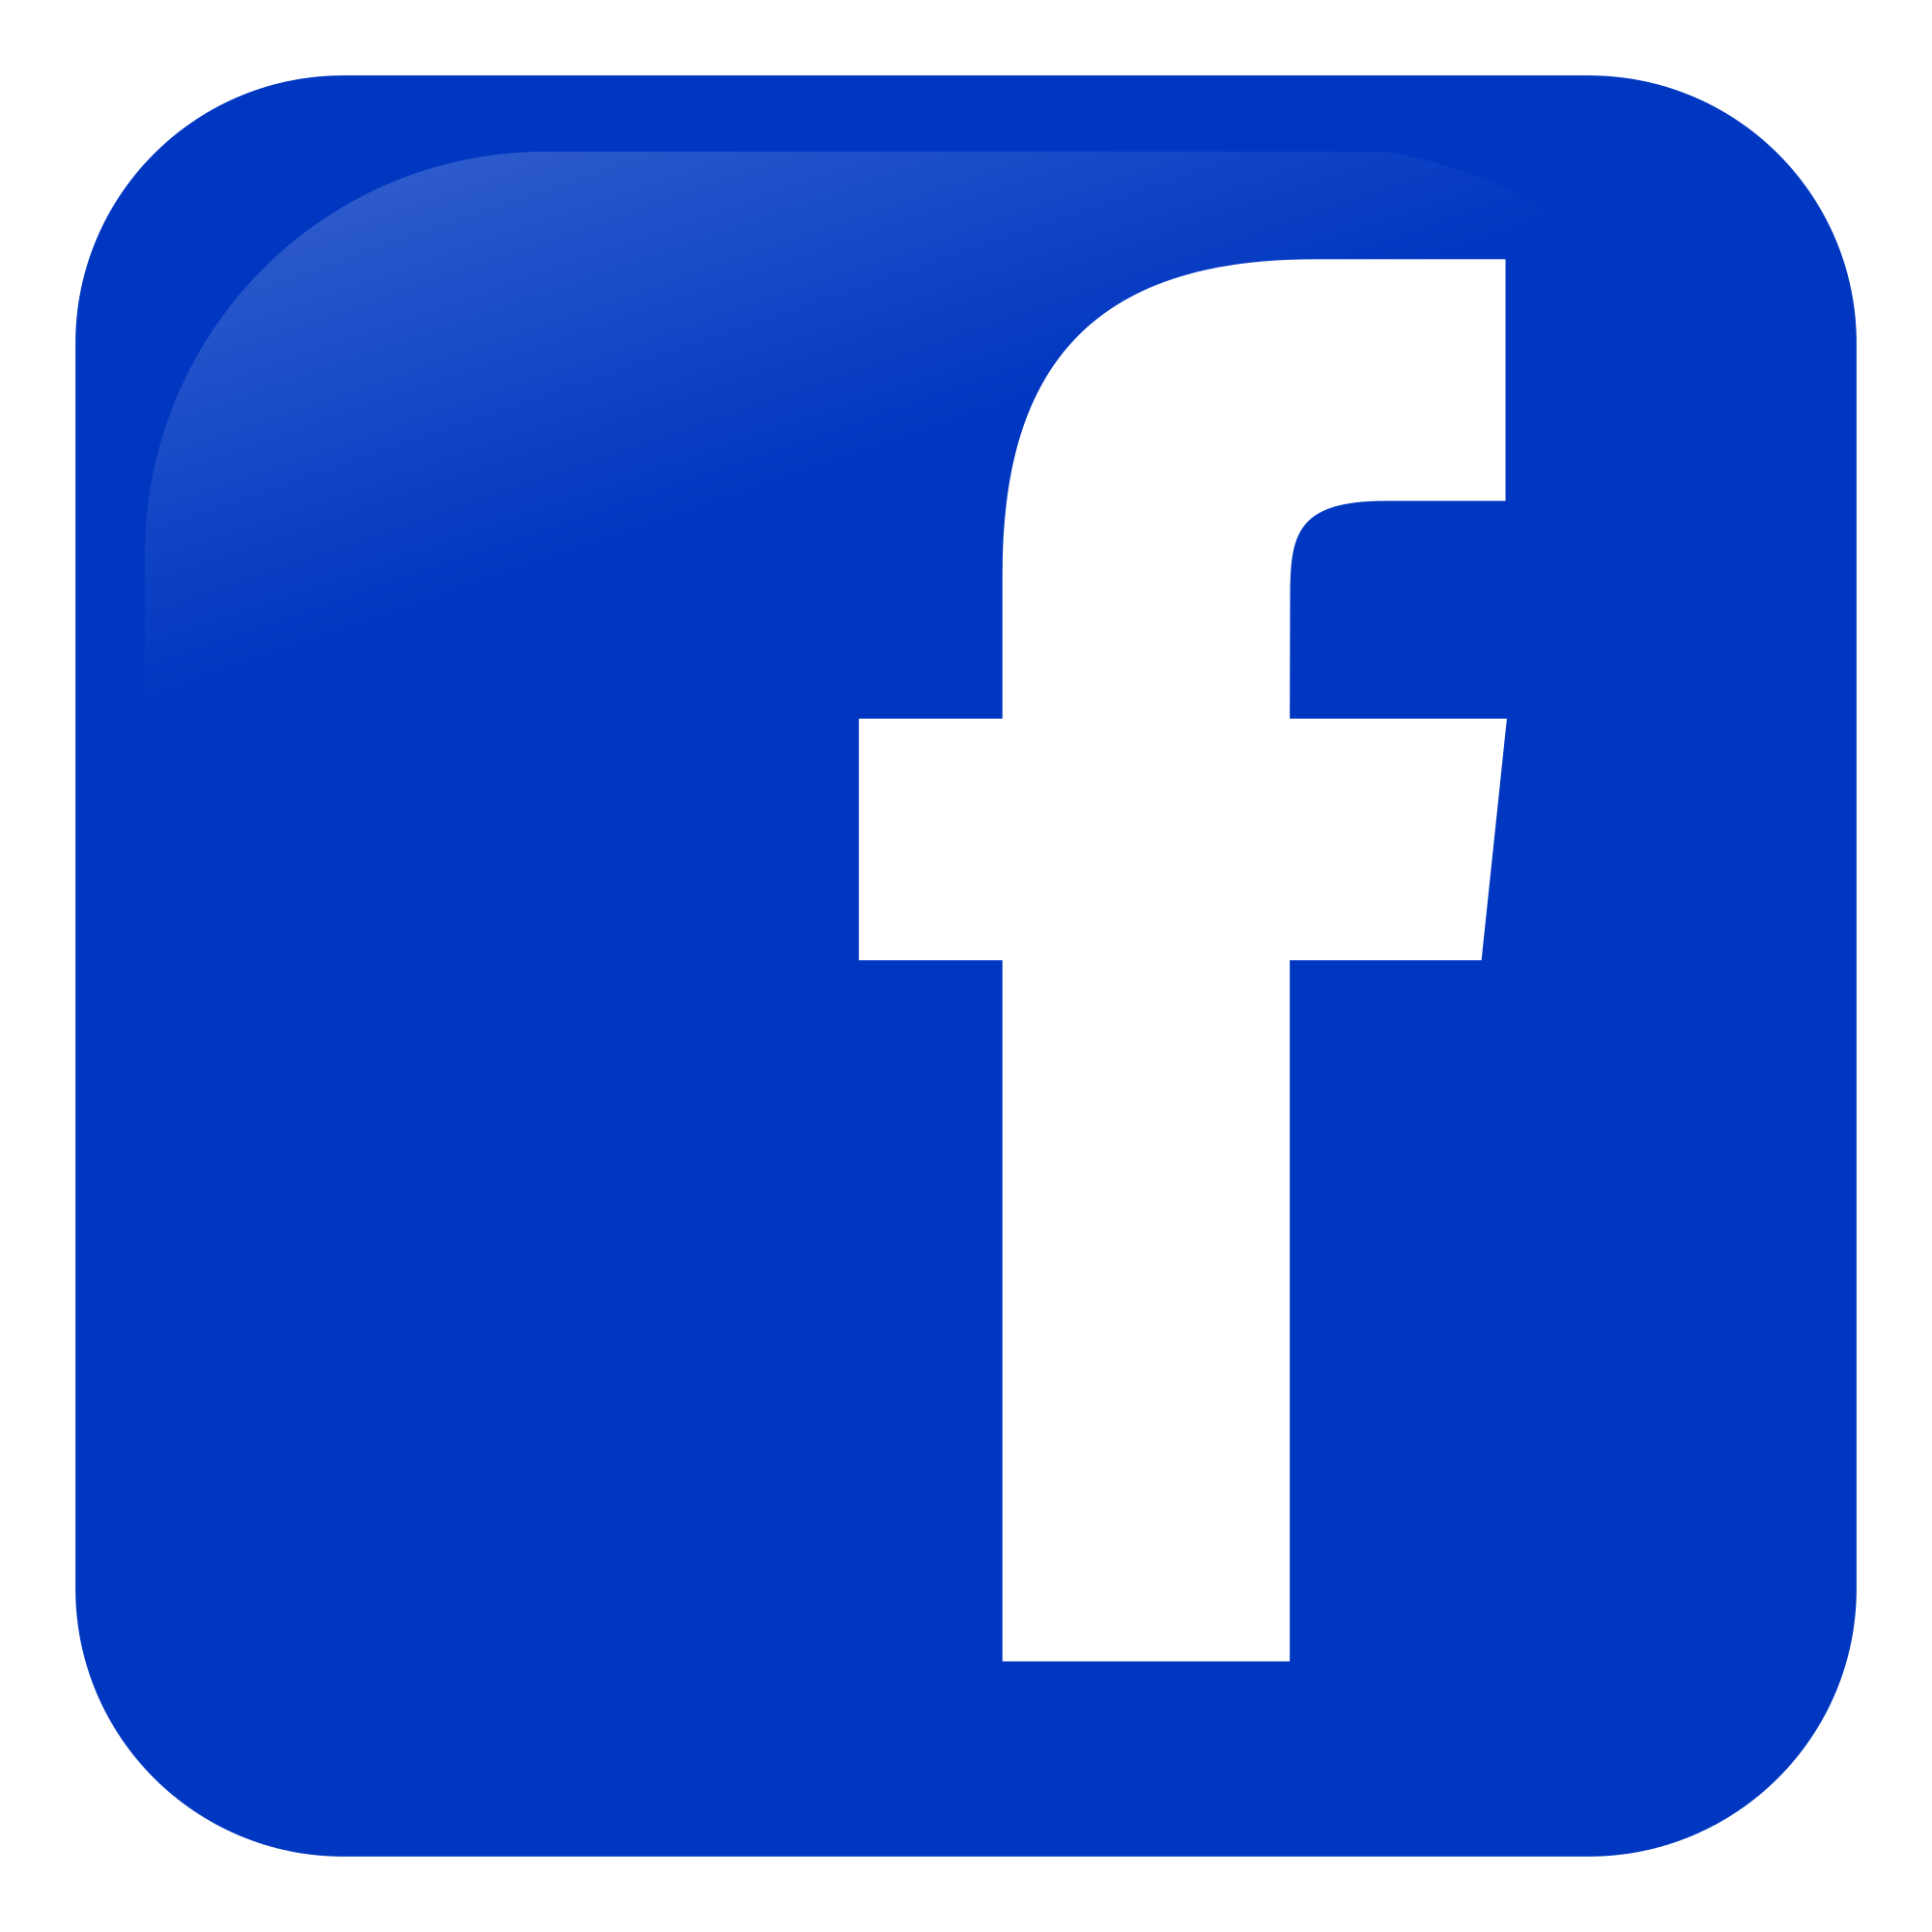 Facebook icon svg